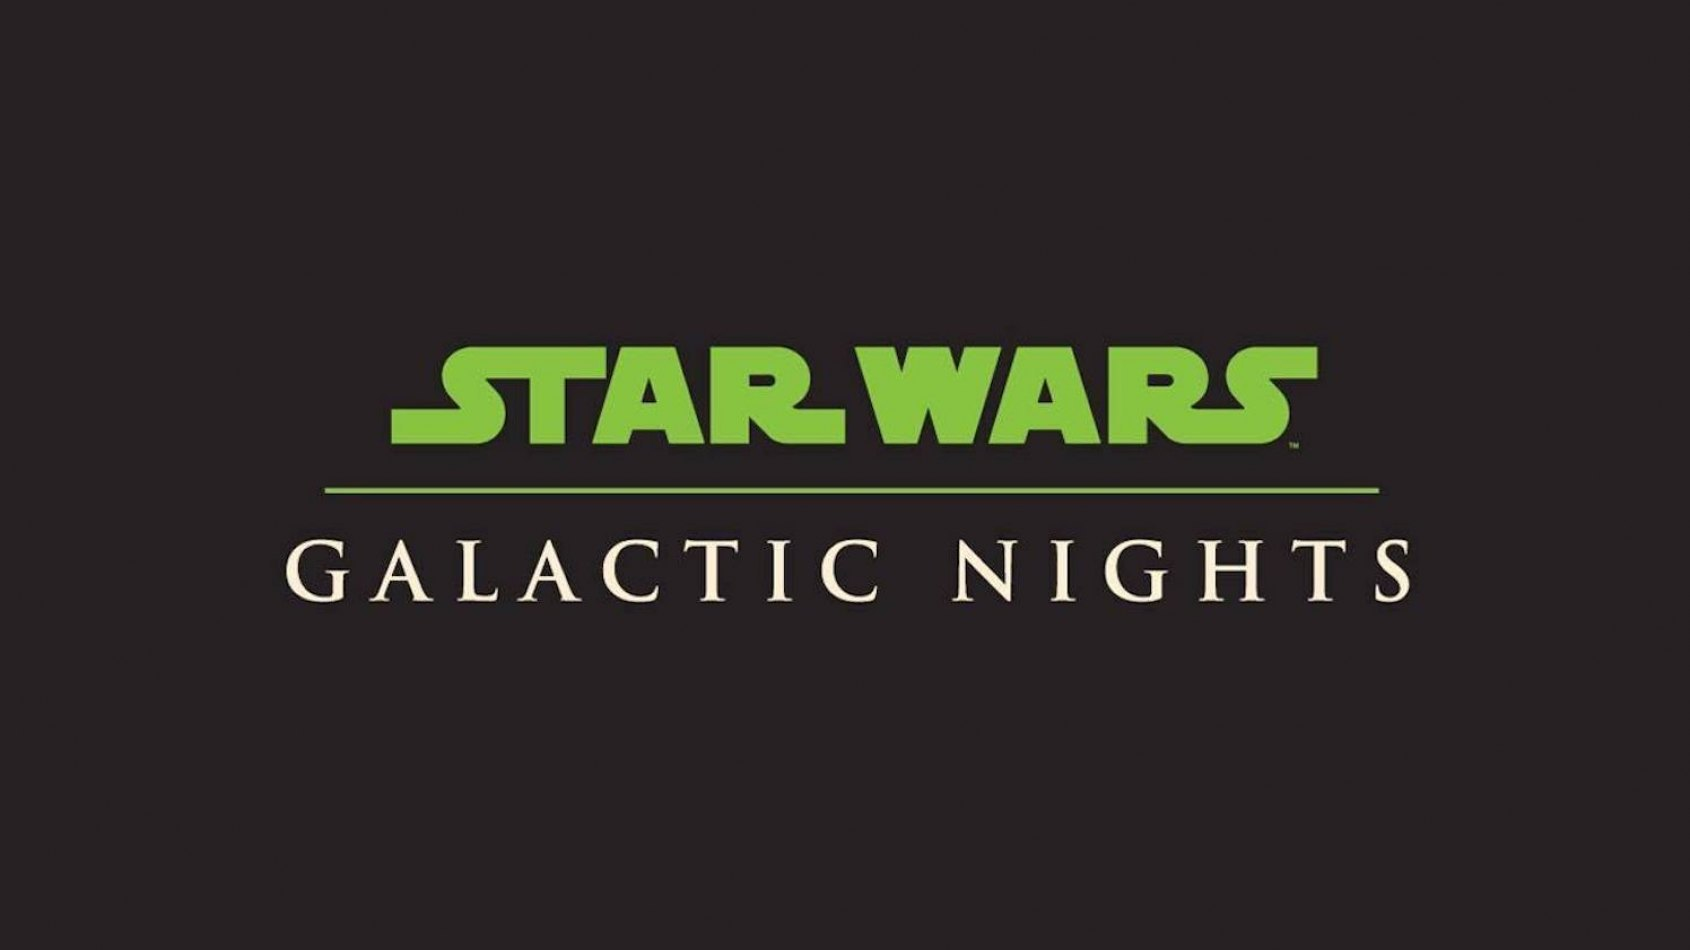 Une Galactic Nights Party à Disney World pour la Star Wars Celebration